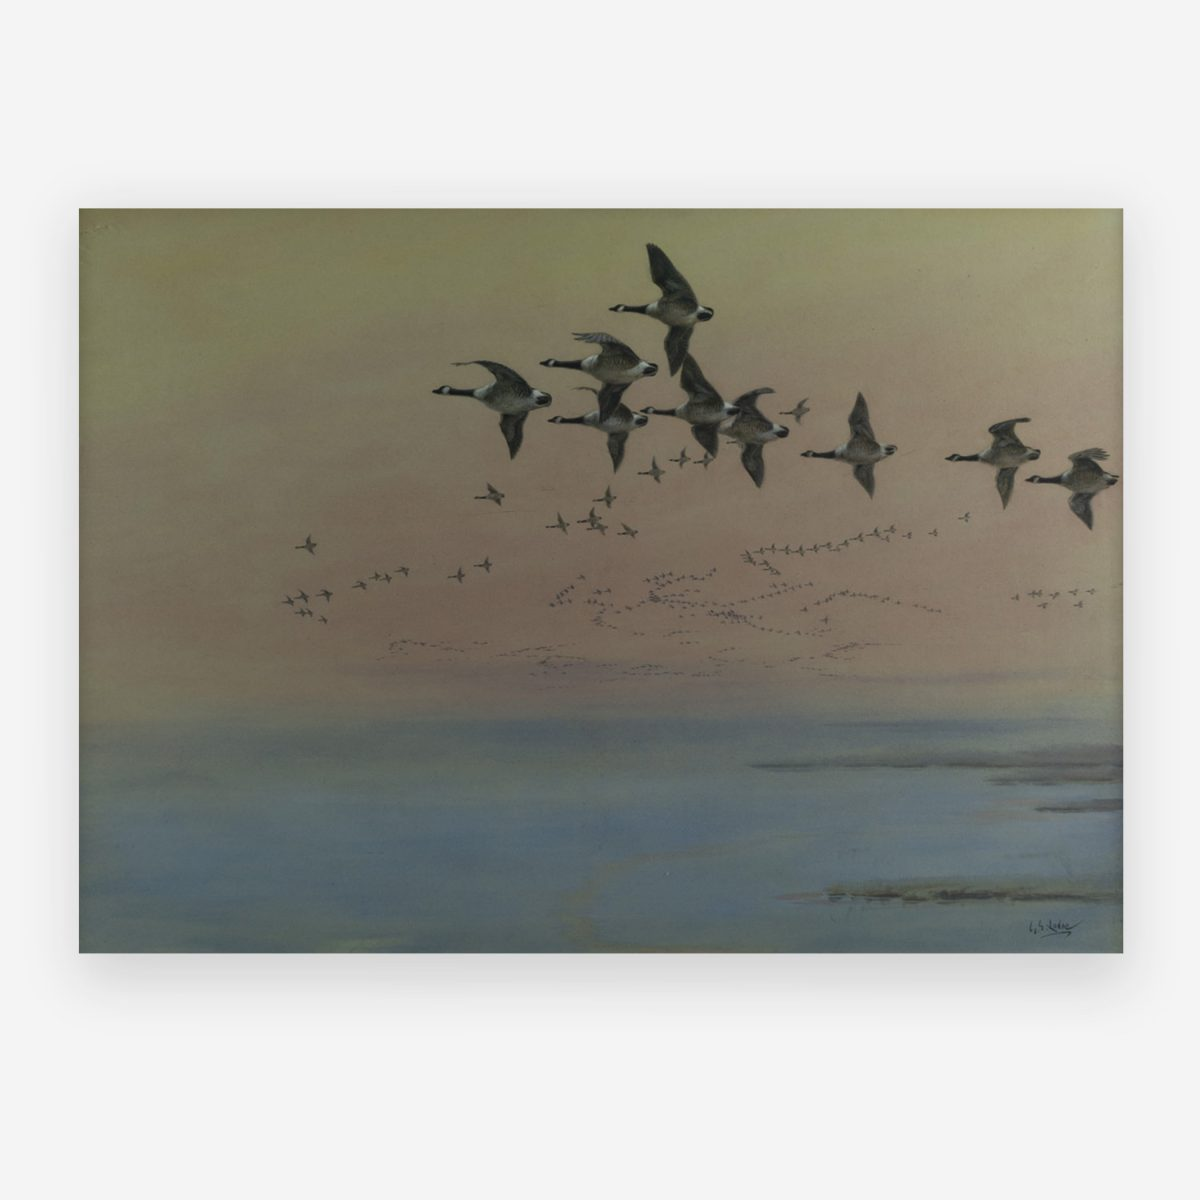 George Edward Lodge - Geese in flight